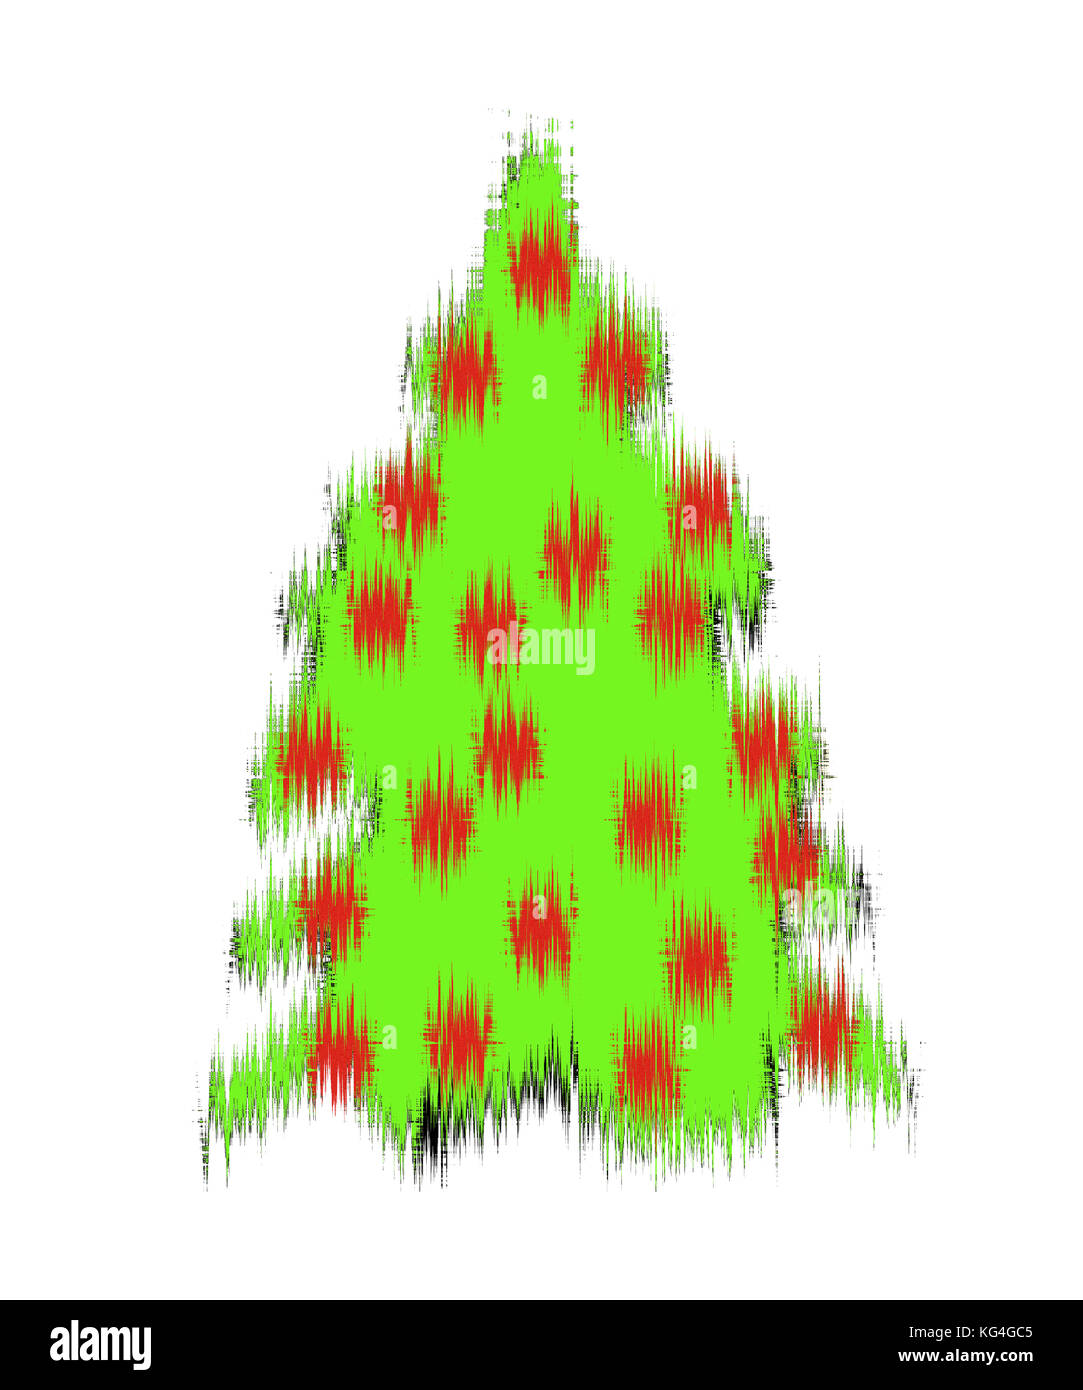 Weihnachtbaum mit roten Kugeln auf weissem Fond, Christmas tree with red baubles on white underground - Stock Image